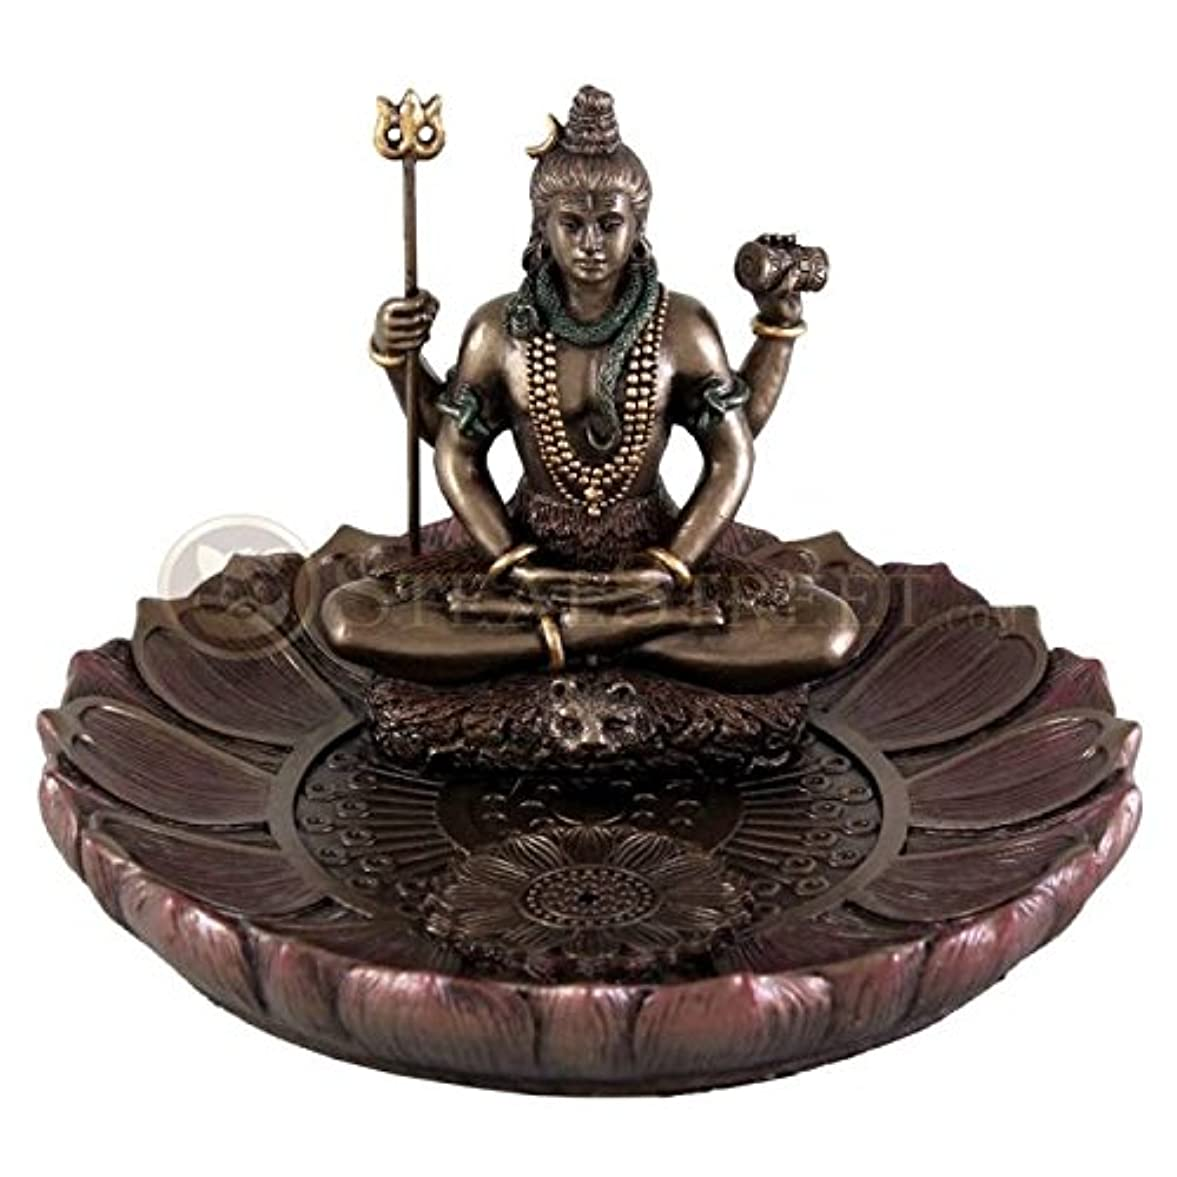 切手彼らはストラトフォードオンエイボンHindu God Shiva in Meditation Round Incense Holder Plate Incense Burner by Top Collection